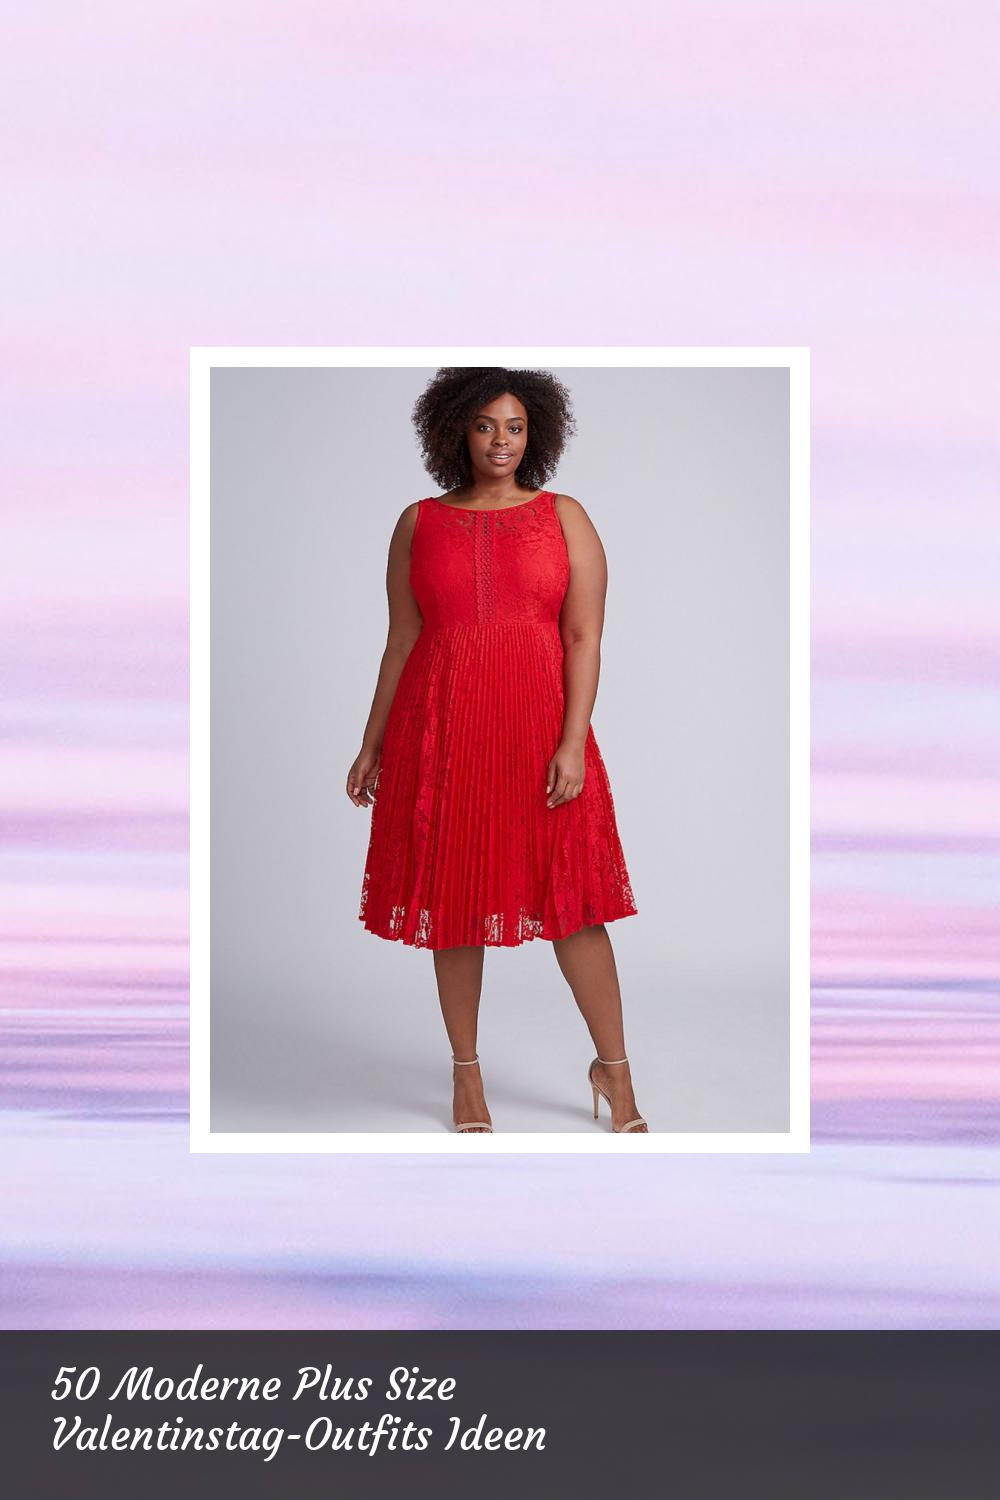 50 Moderne Plus Size Valentinstag-Outfits Ideen 44